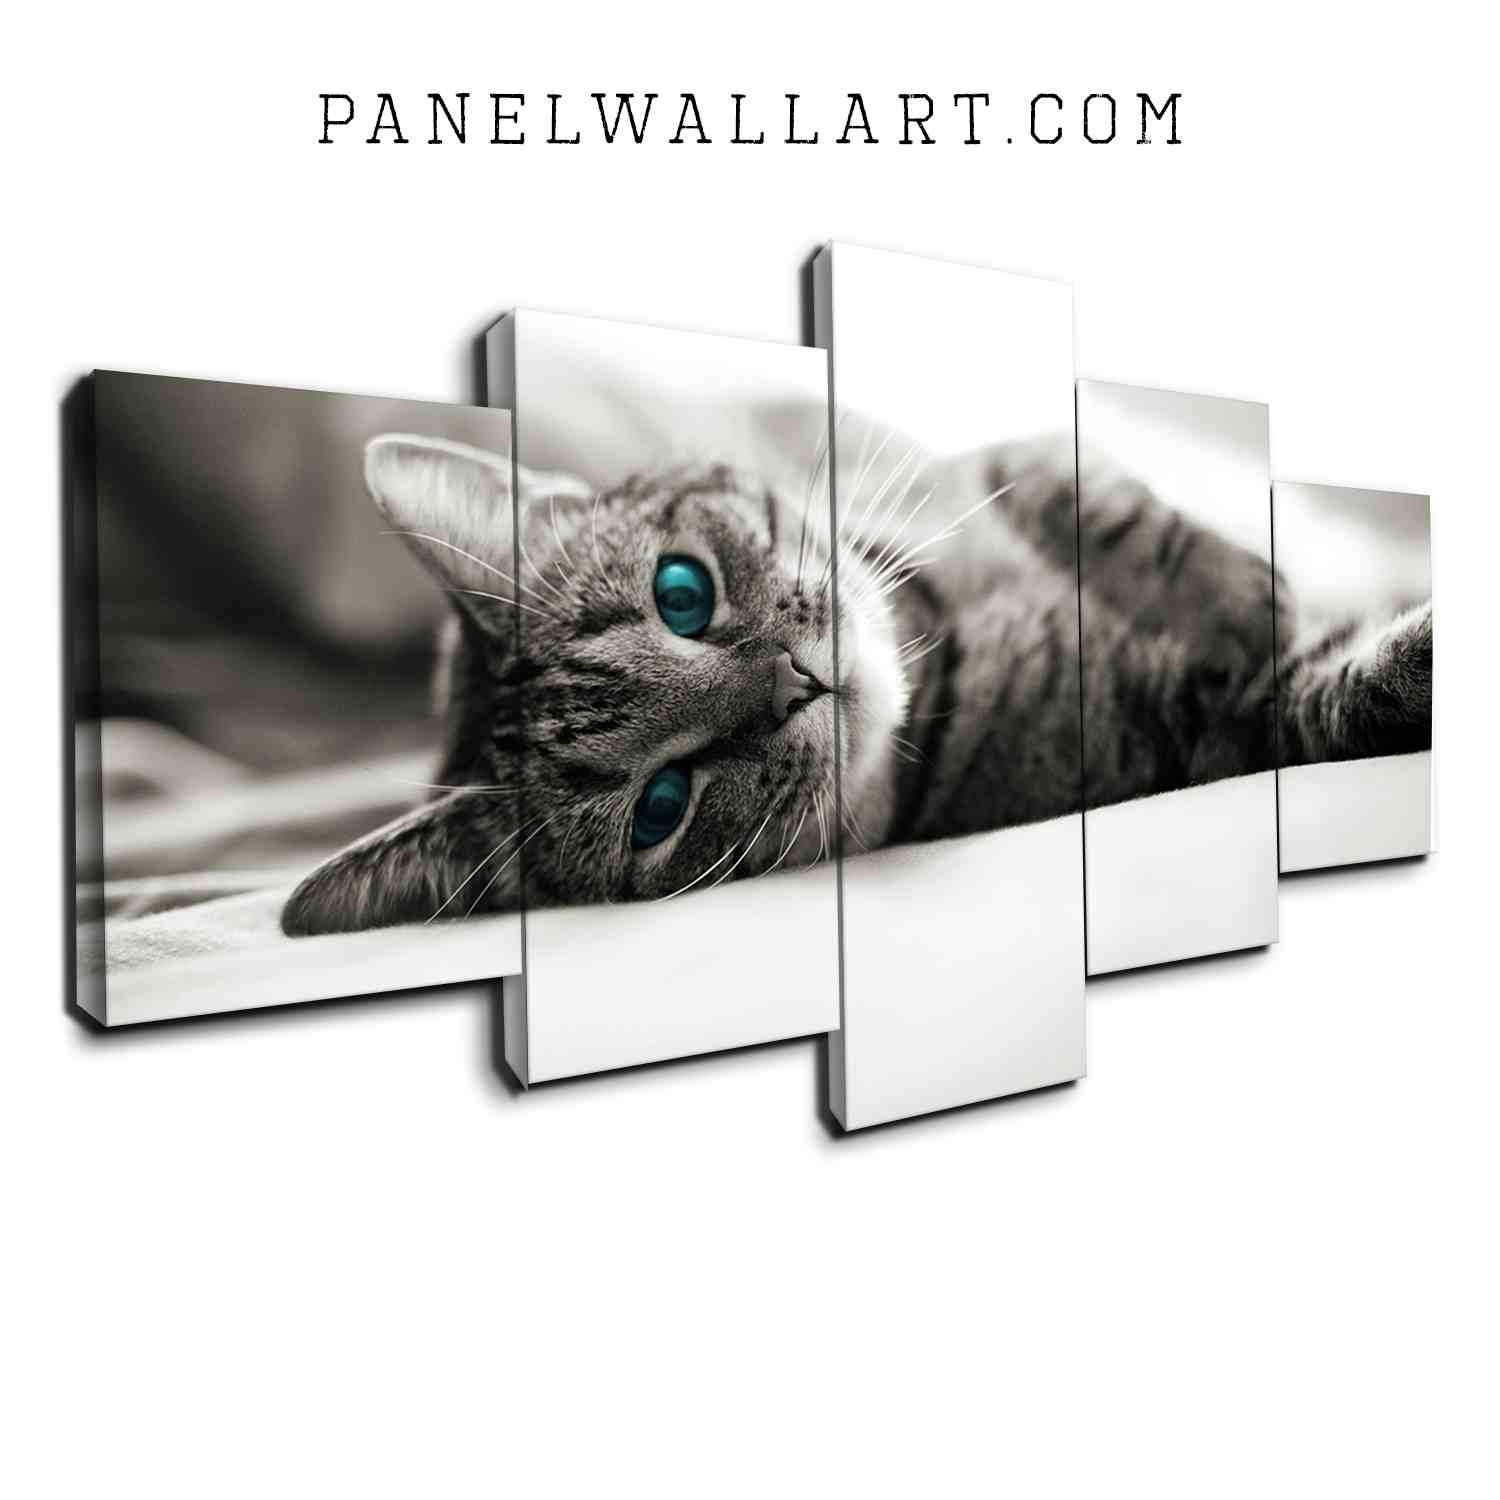 5 Panel Canvas Wall Art | Kitten On Bed | Panelwallart With Best And Newest Cat Canvas Wall Art (View 5 of 20)